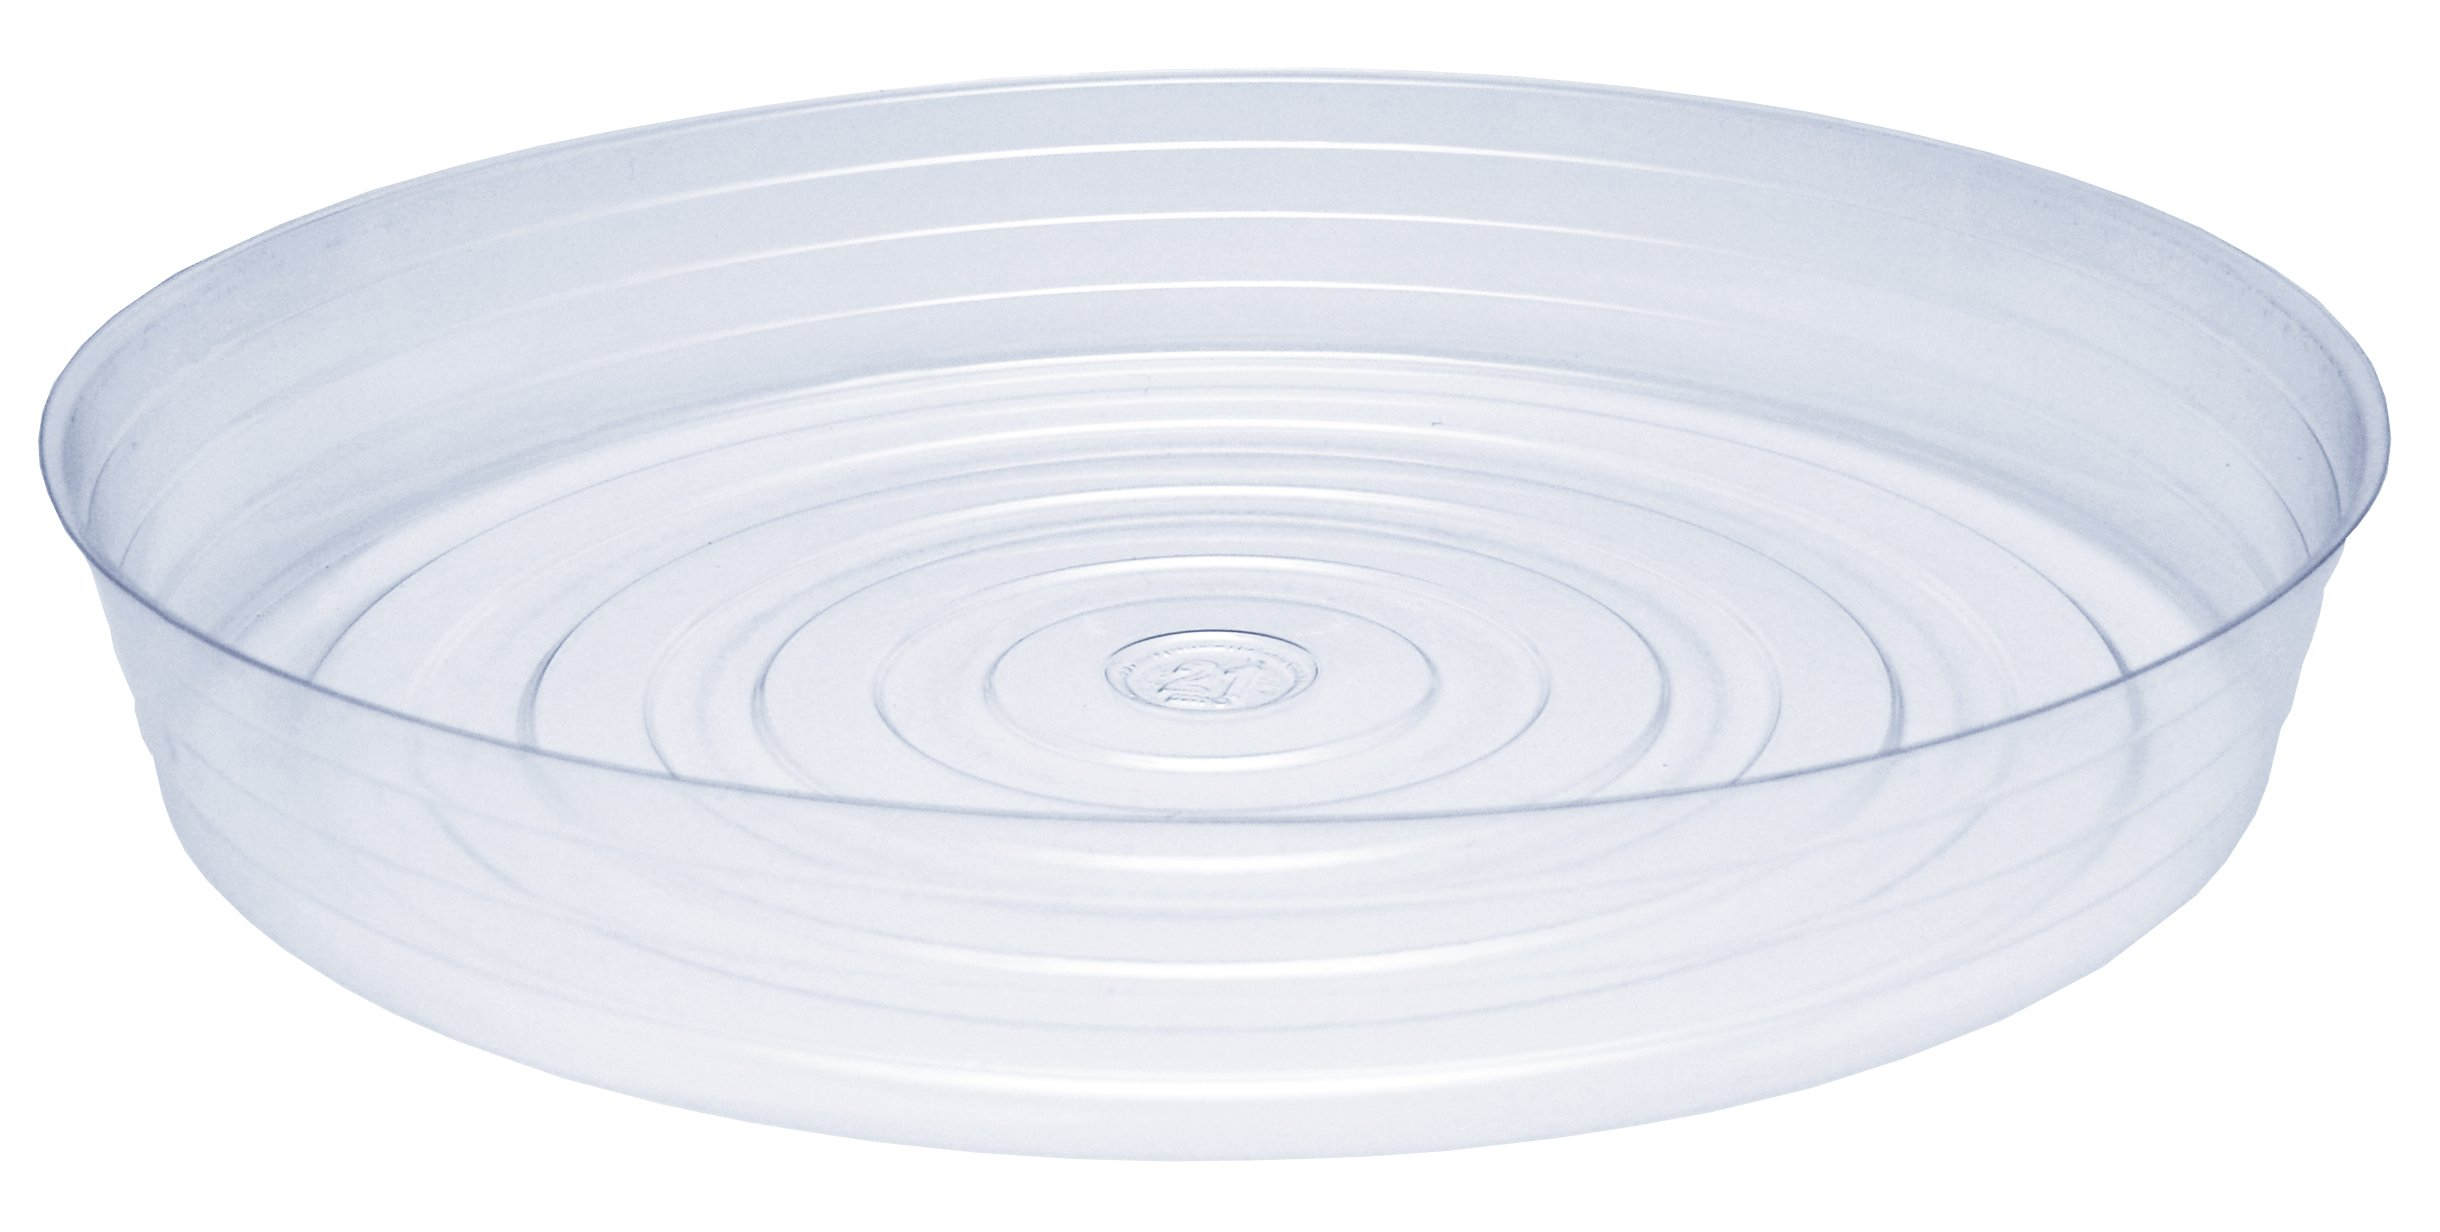 CWP CW-2100N Vinyl Plant Saucer, 21-Inch Diameter, Clear by CWP